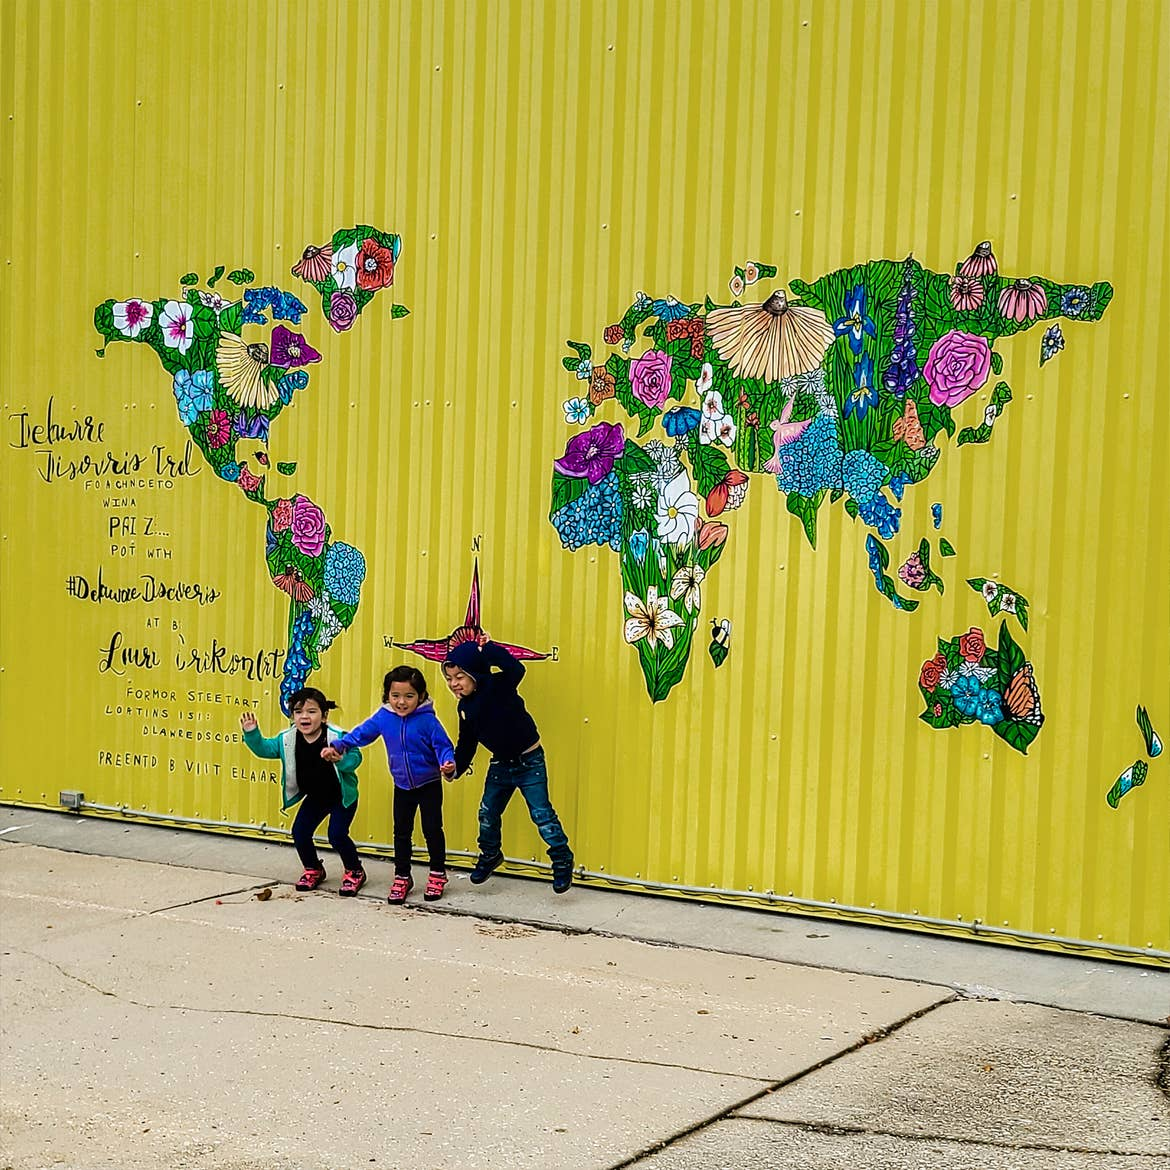 Three Asian Pacific Islander toddlers (left to right: Two girls and a boy) wear long-sleeve shirts and pants in front of a galvanized yellow wall with a mural of the world map with floral patterns.